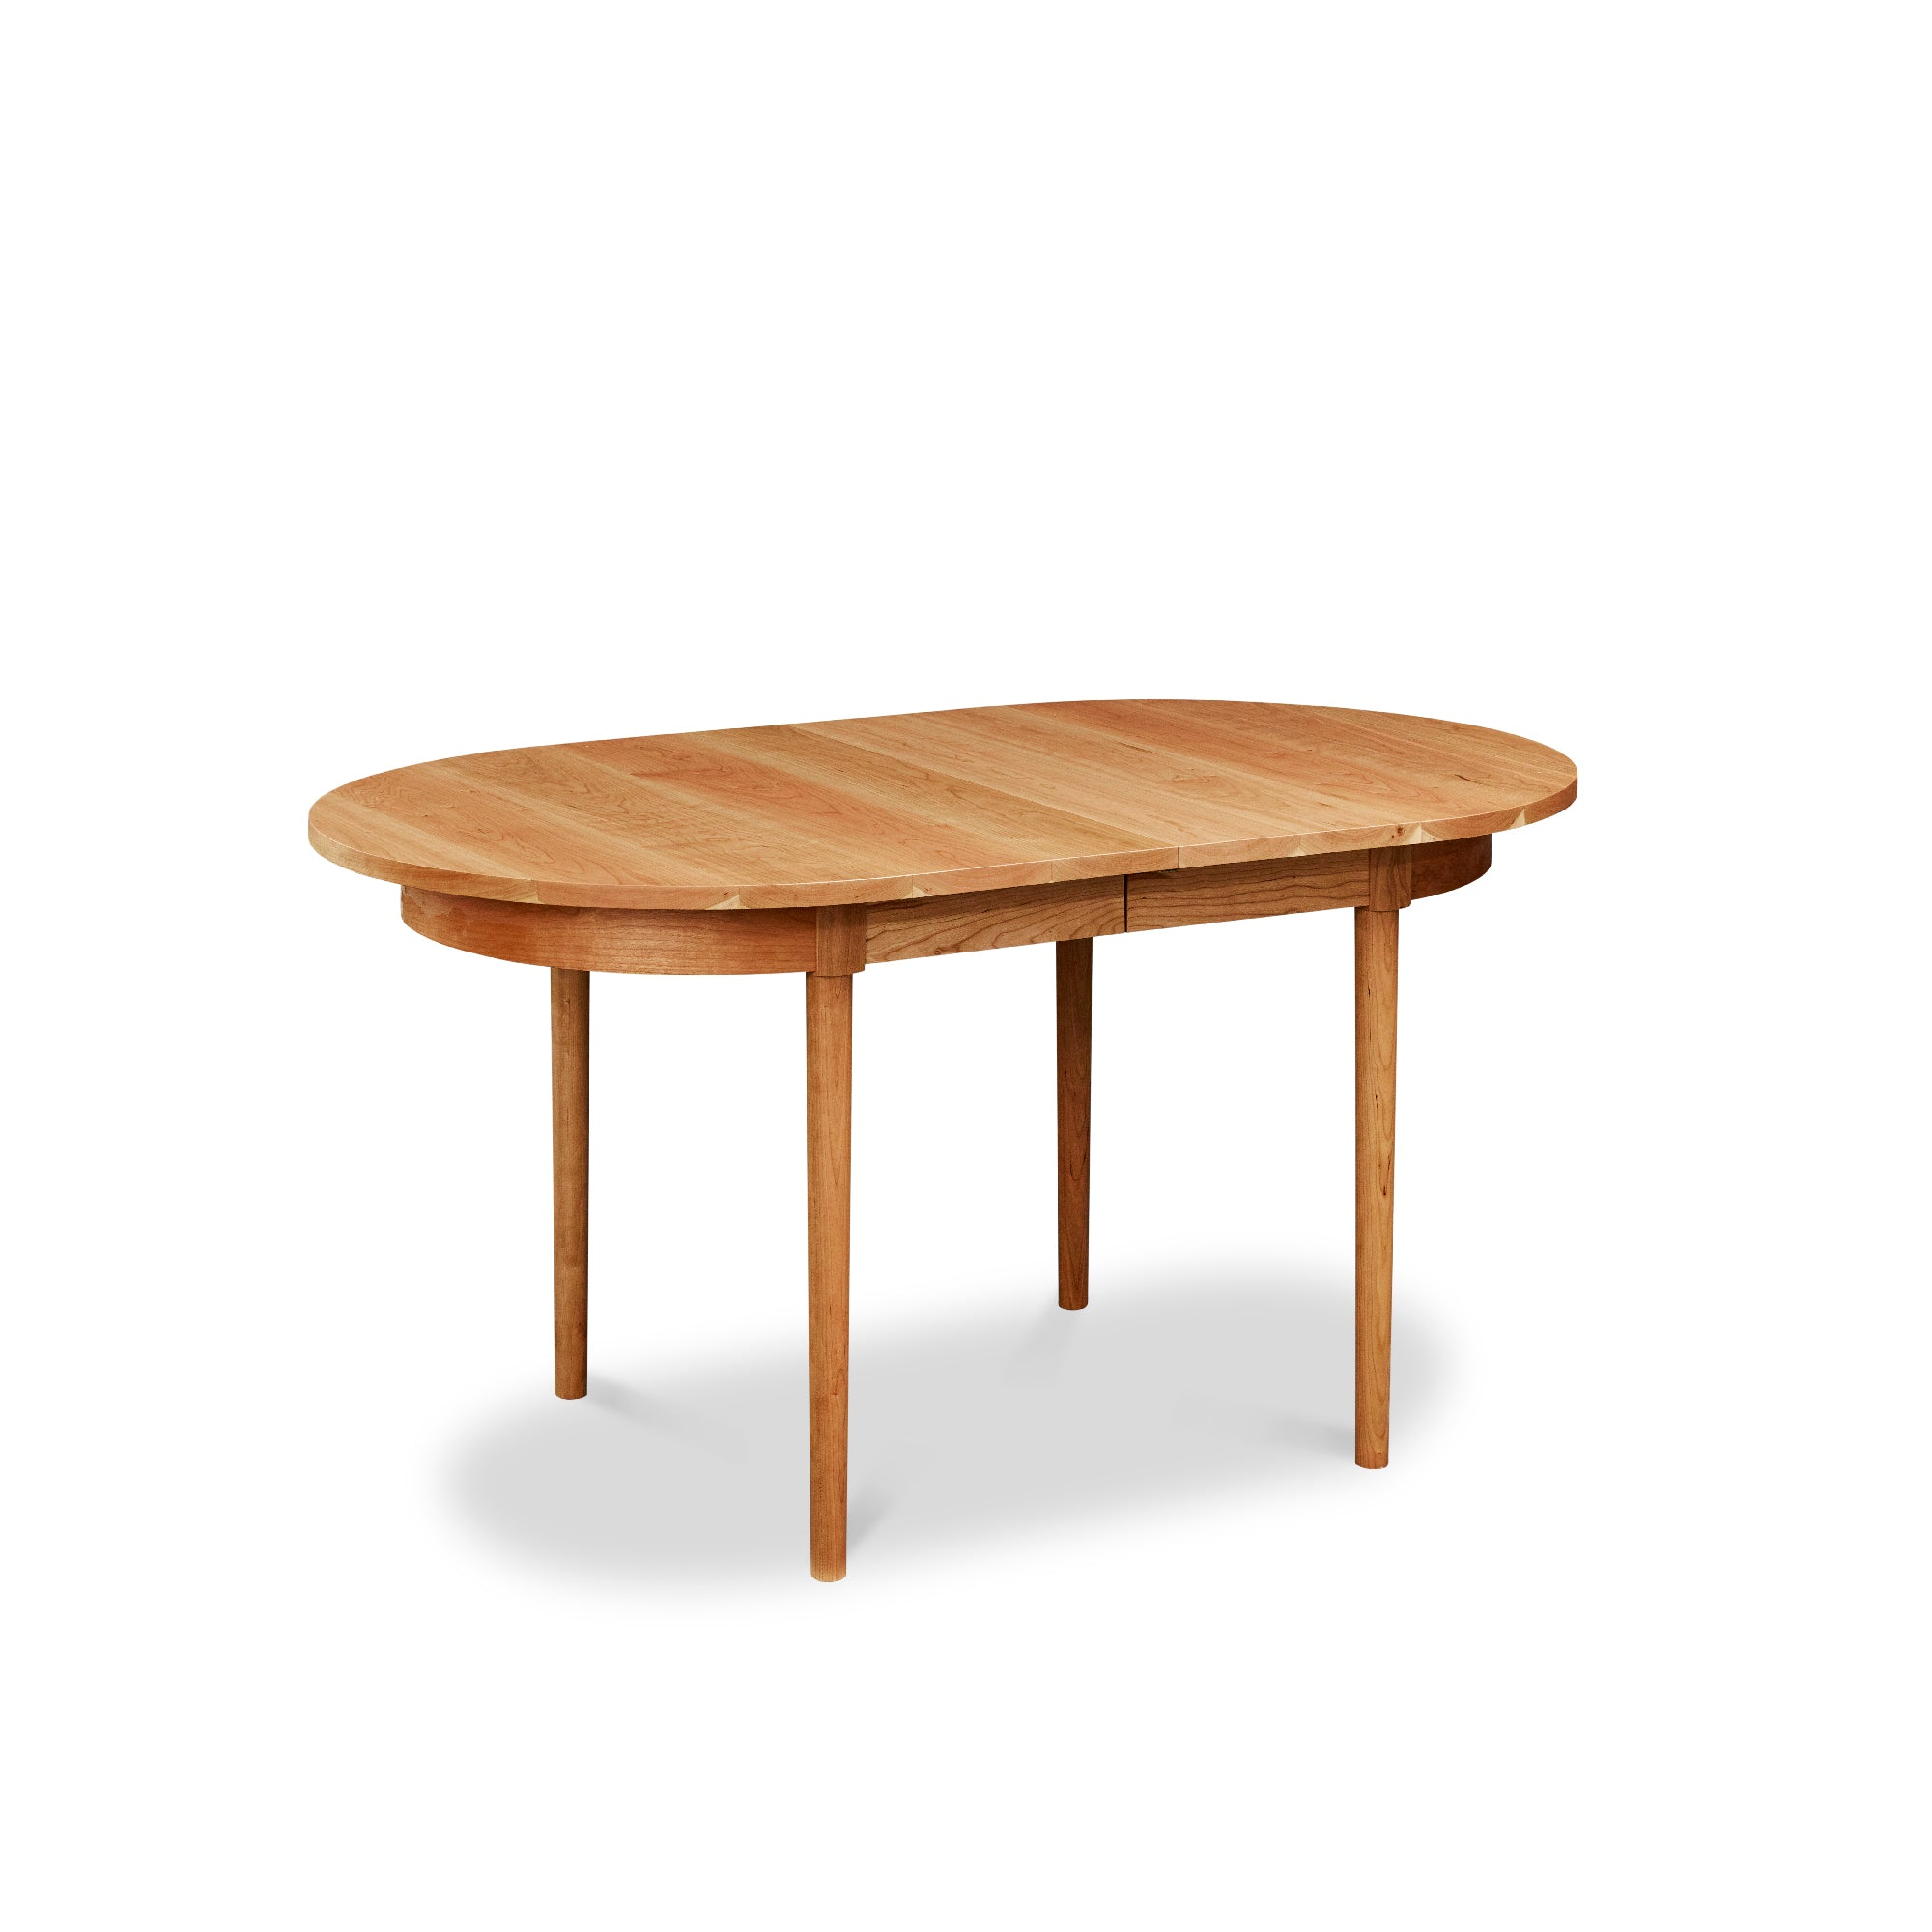 Modern solid cherry oval extension dining table from Chilton Furniture Co. in Maine